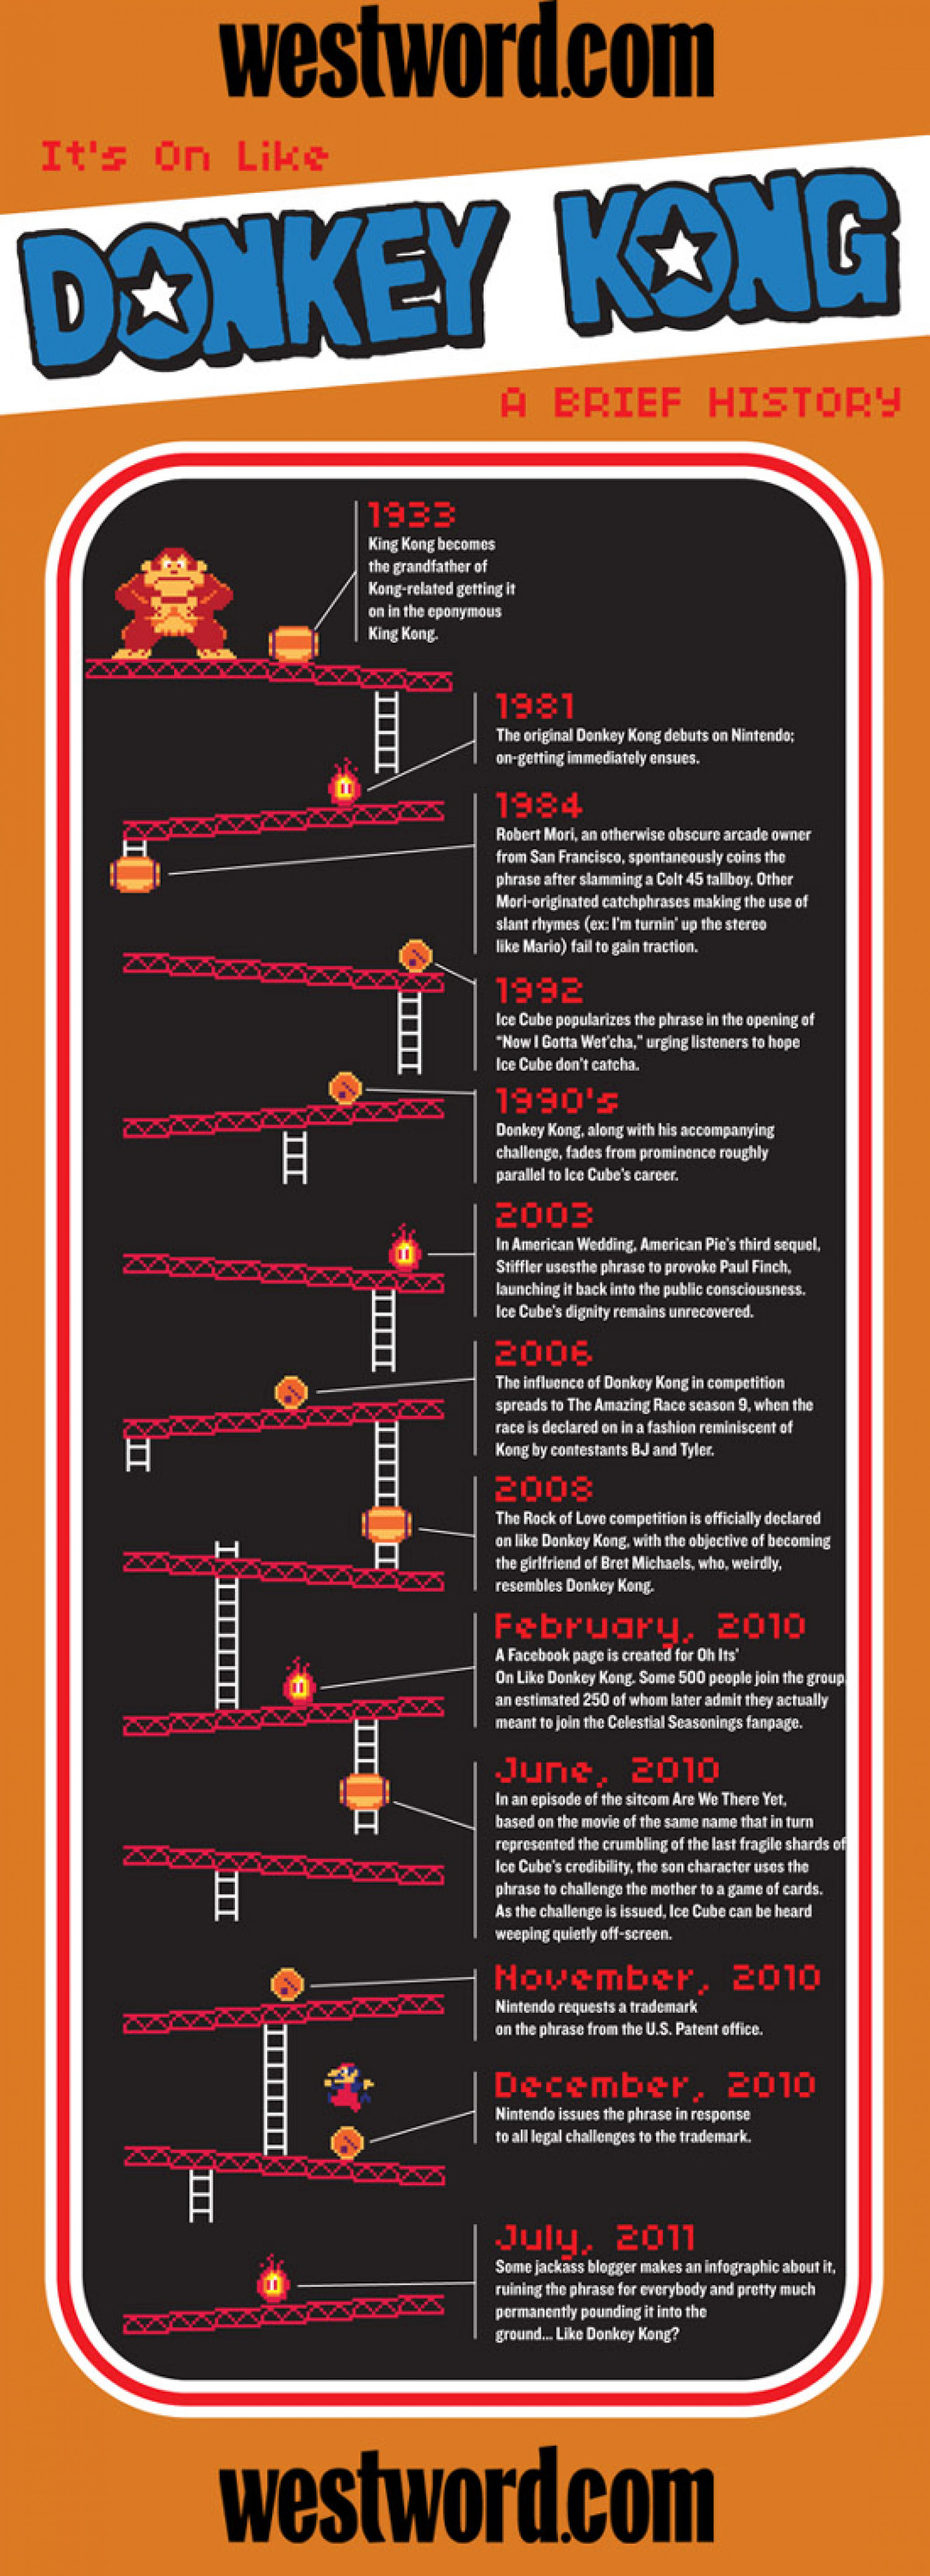 It's on like Donkey Kong: A brief history  Infographic